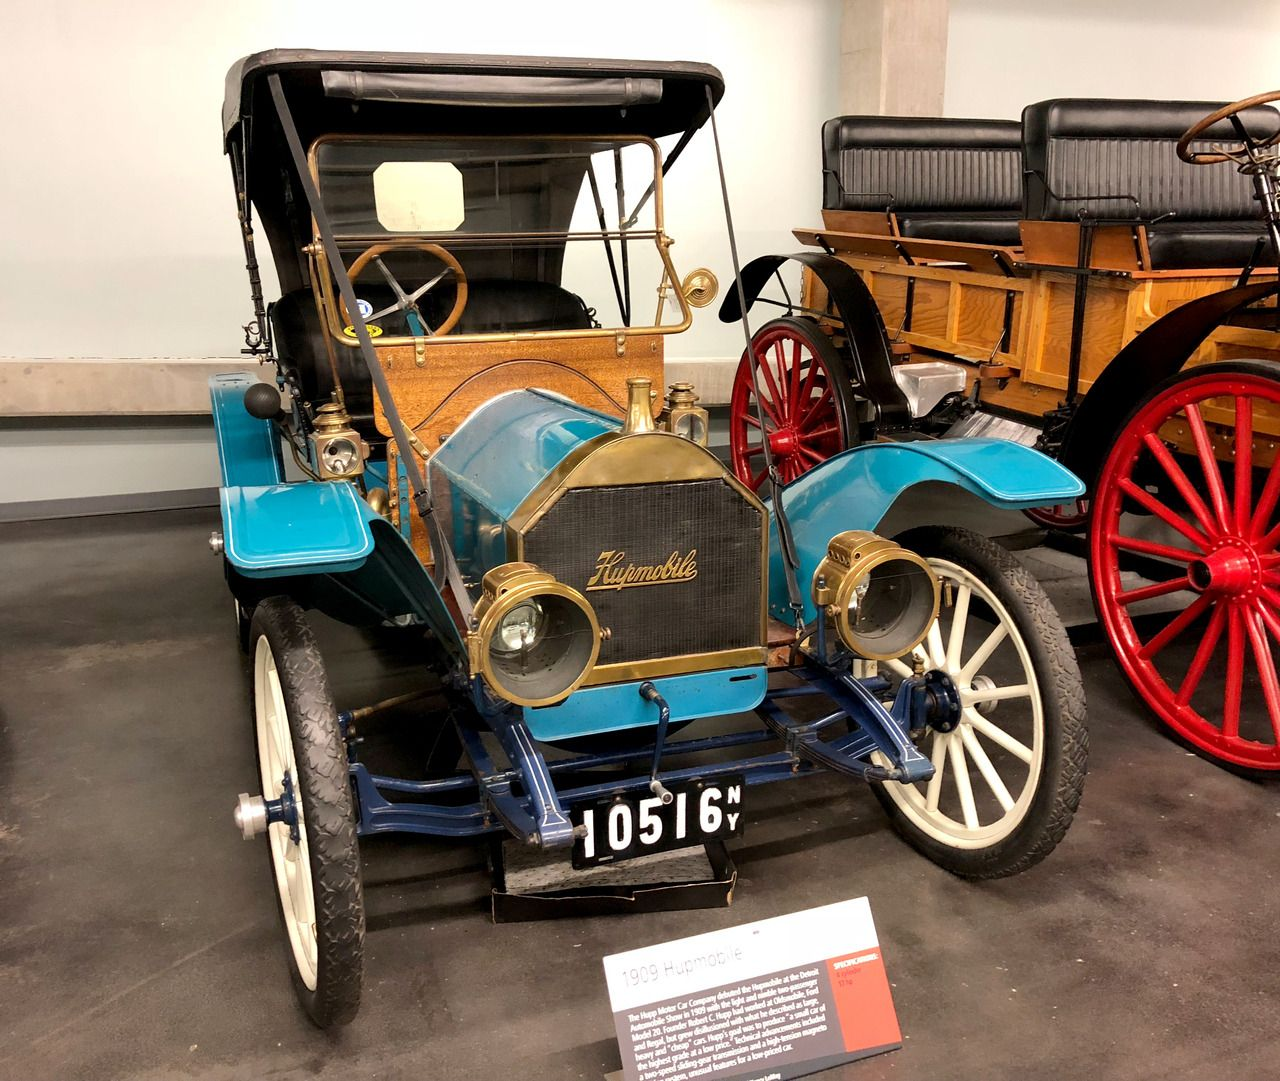 1909 Hupmobile Model 20 Roadster At America S Car Museum In Tacoma Washington The Model 20 Was The First Hupmobile Before He Started The Hupp Motor Car Compa